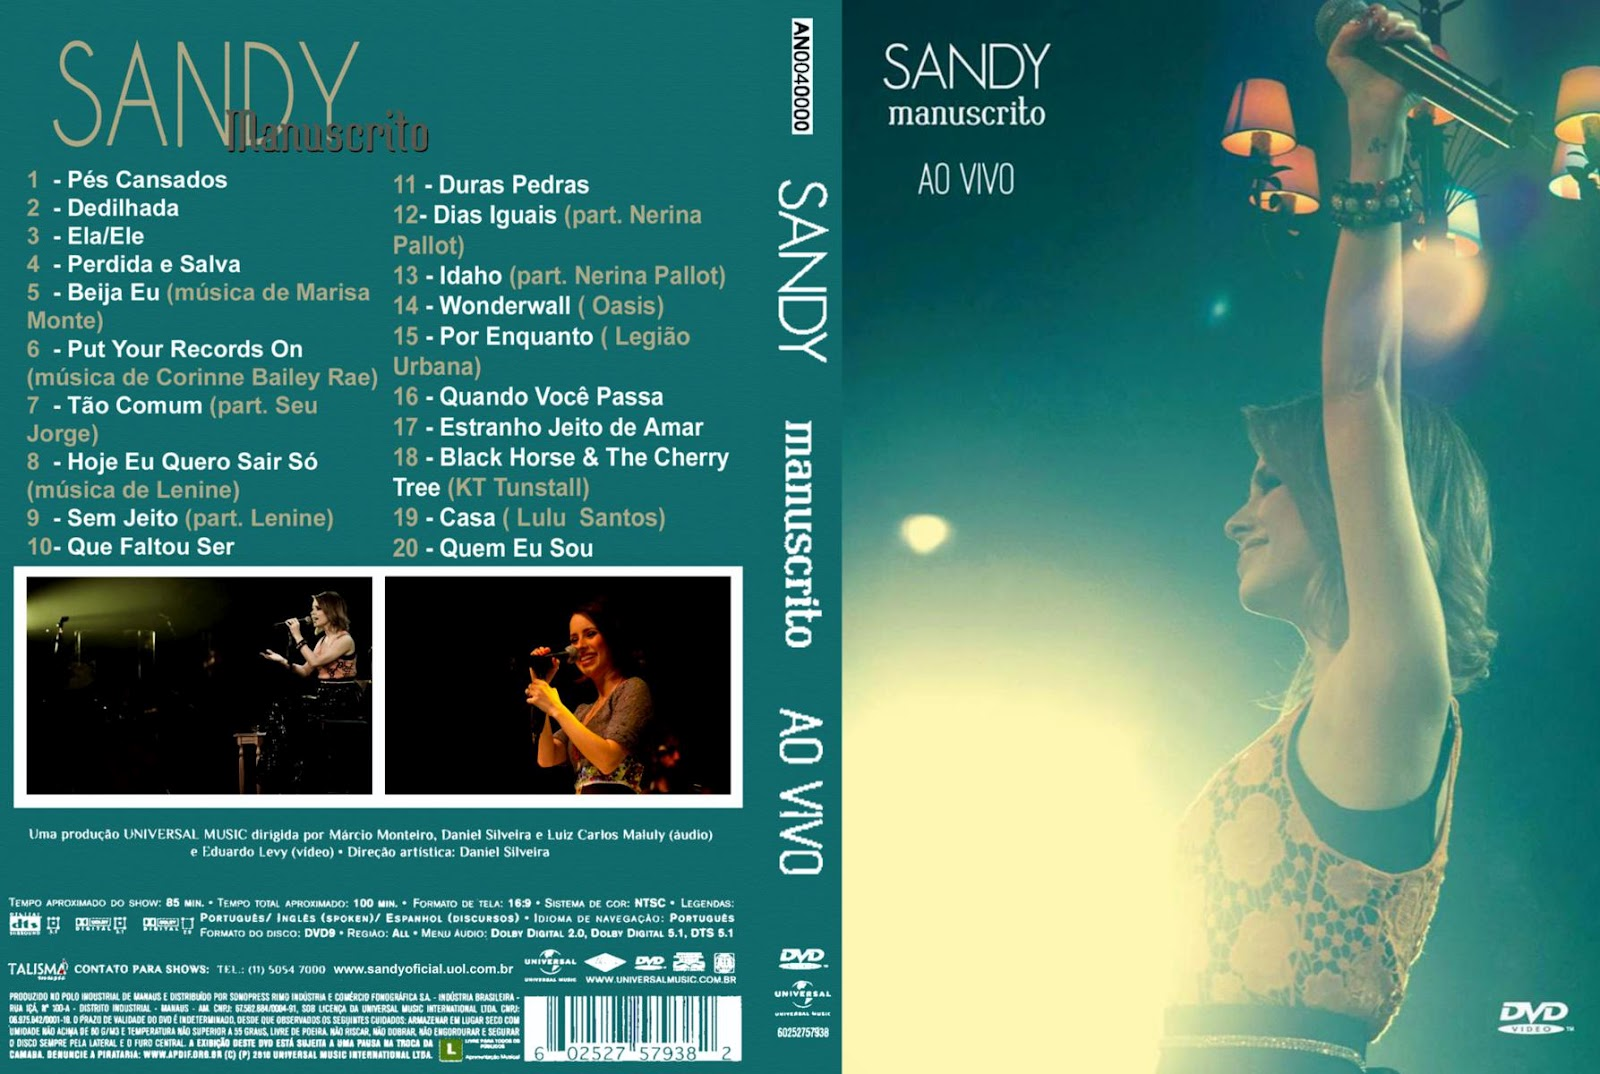 dvd sandy manuscrito